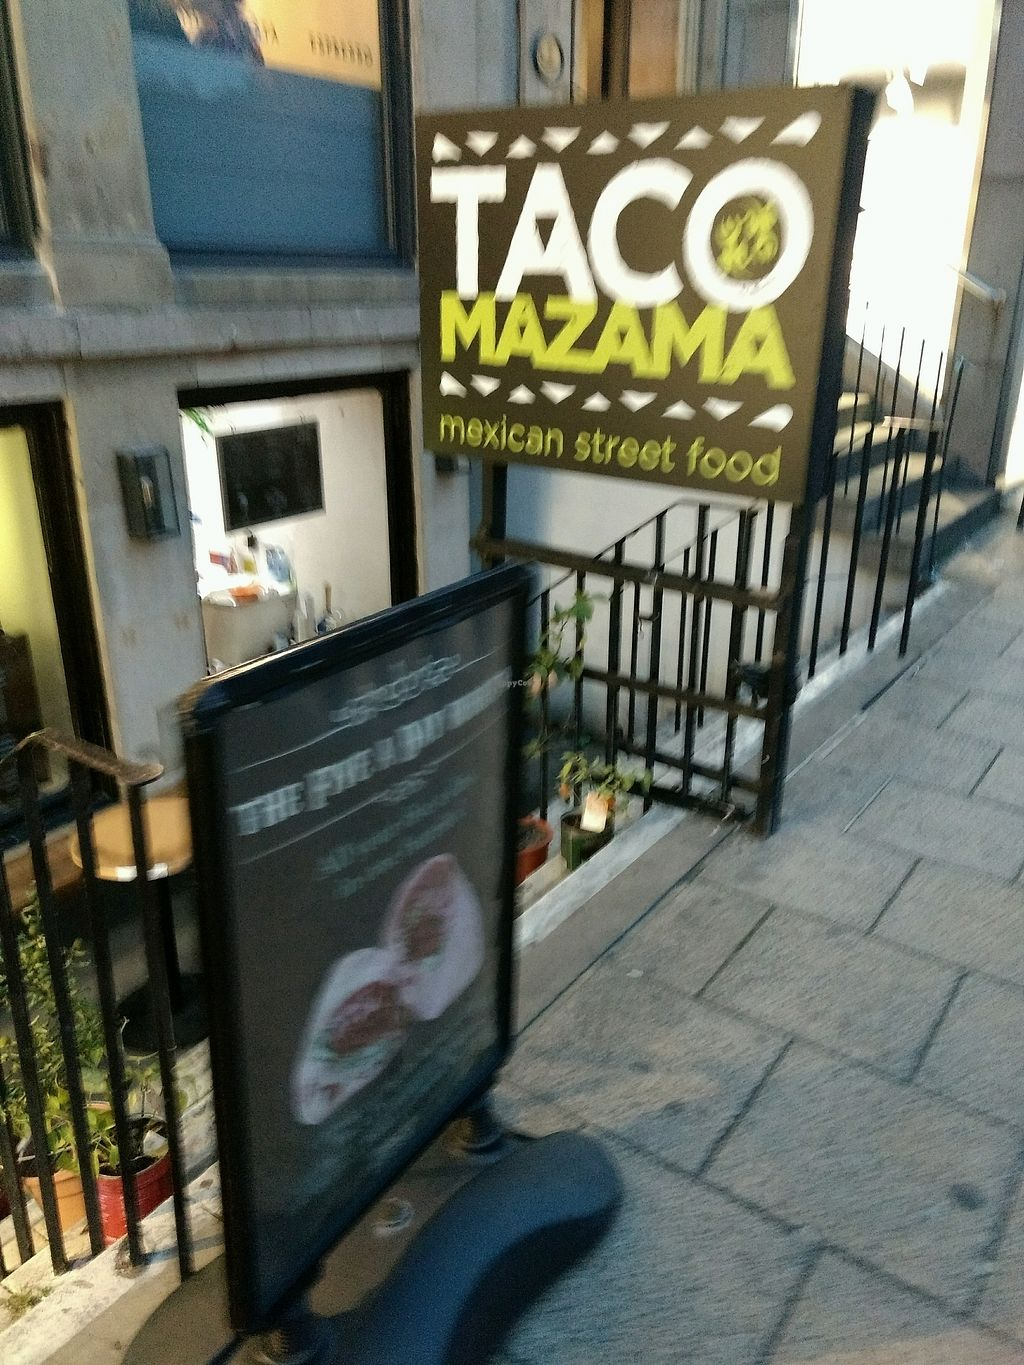 """Photo of Taco Mazama - Princes St  by <a href=""""/members/profile/craigmc"""">craigmc</a> <br/>ootside <br/> September 27, 2017  - <a href='/contact/abuse/image/98103/309114'>Report</a>"""